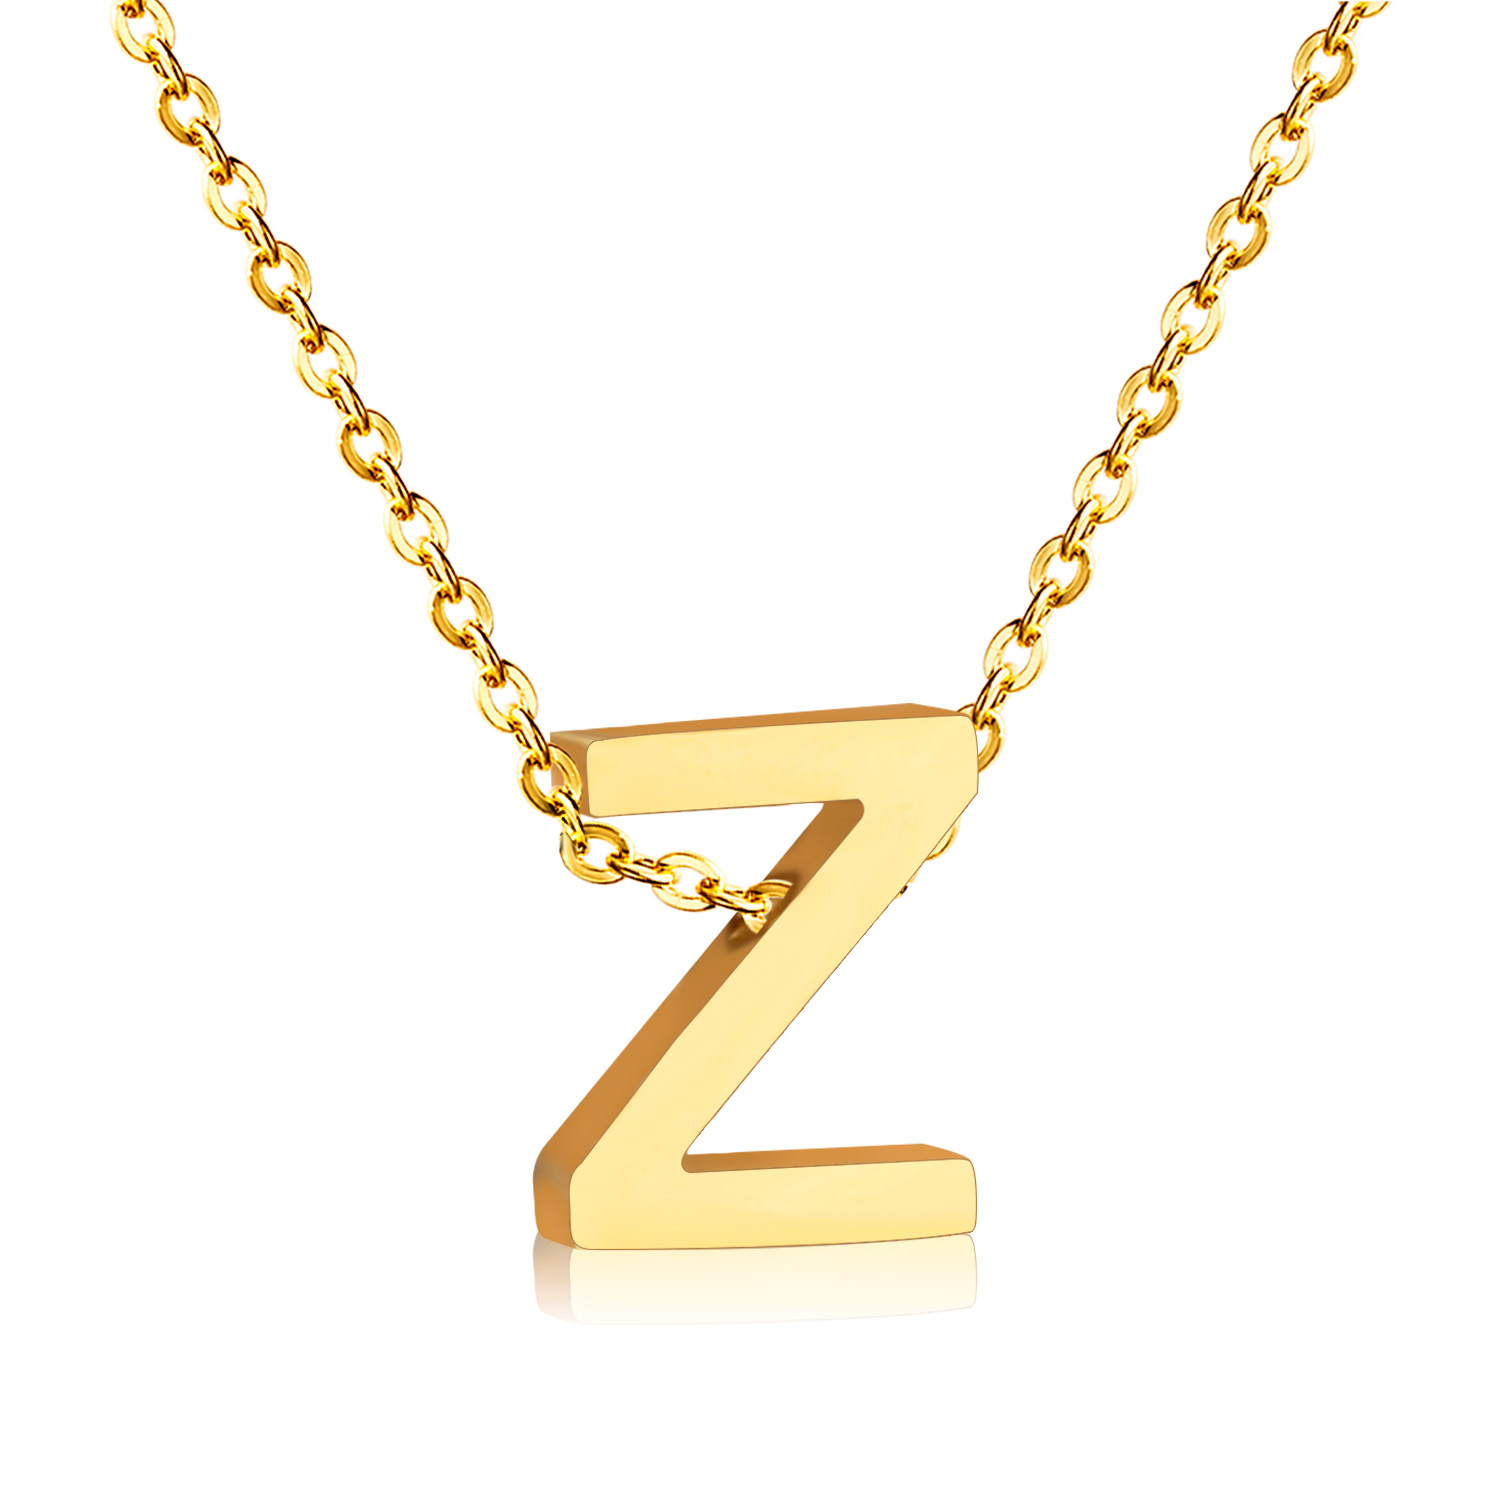 Letter Z Necklace ALP New Letter Z Pendant Necklace